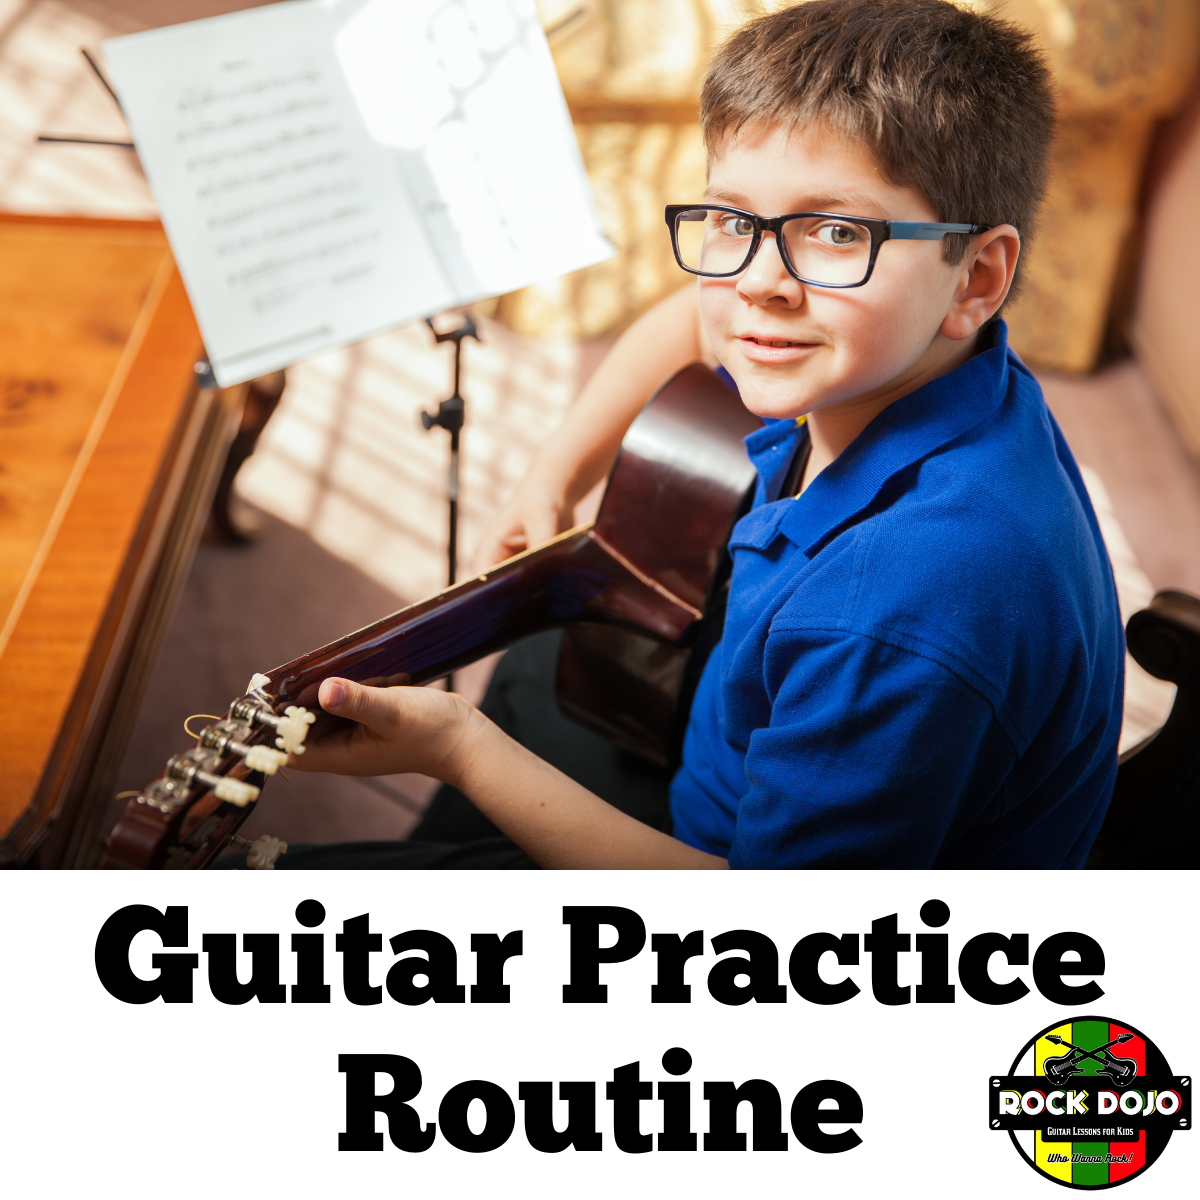 Learn how to build a guitar practice routine for kids in this free online guitar lesson.